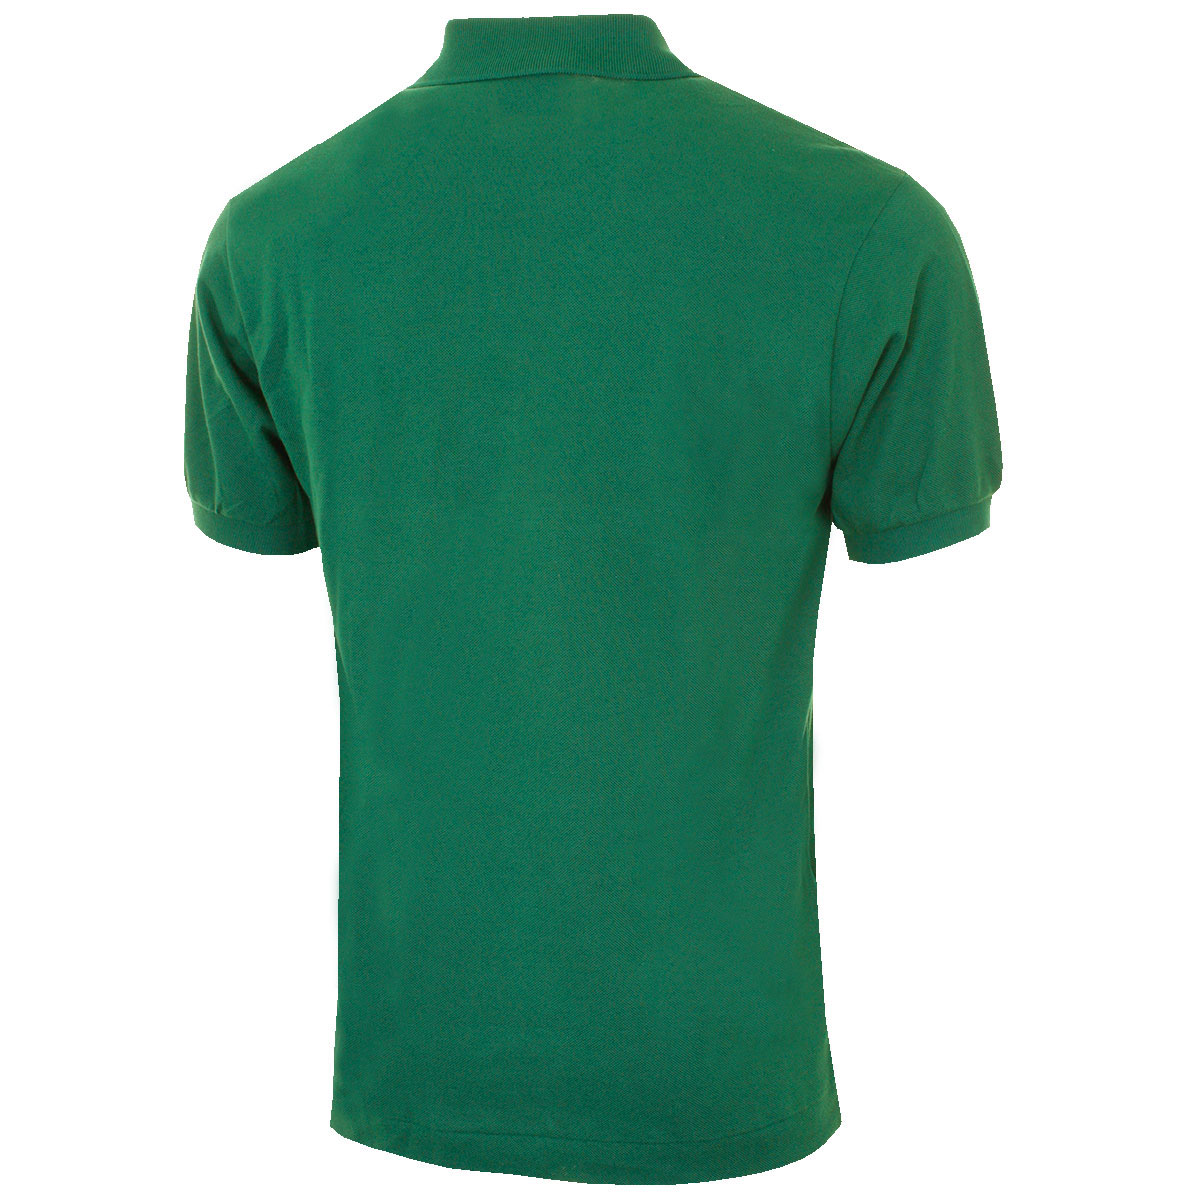 Lacoste-Mens-Classic-Cotton-L1212-Short-Sleeve-Polo-Shirt-31-OFF-RRP thumbnail 18